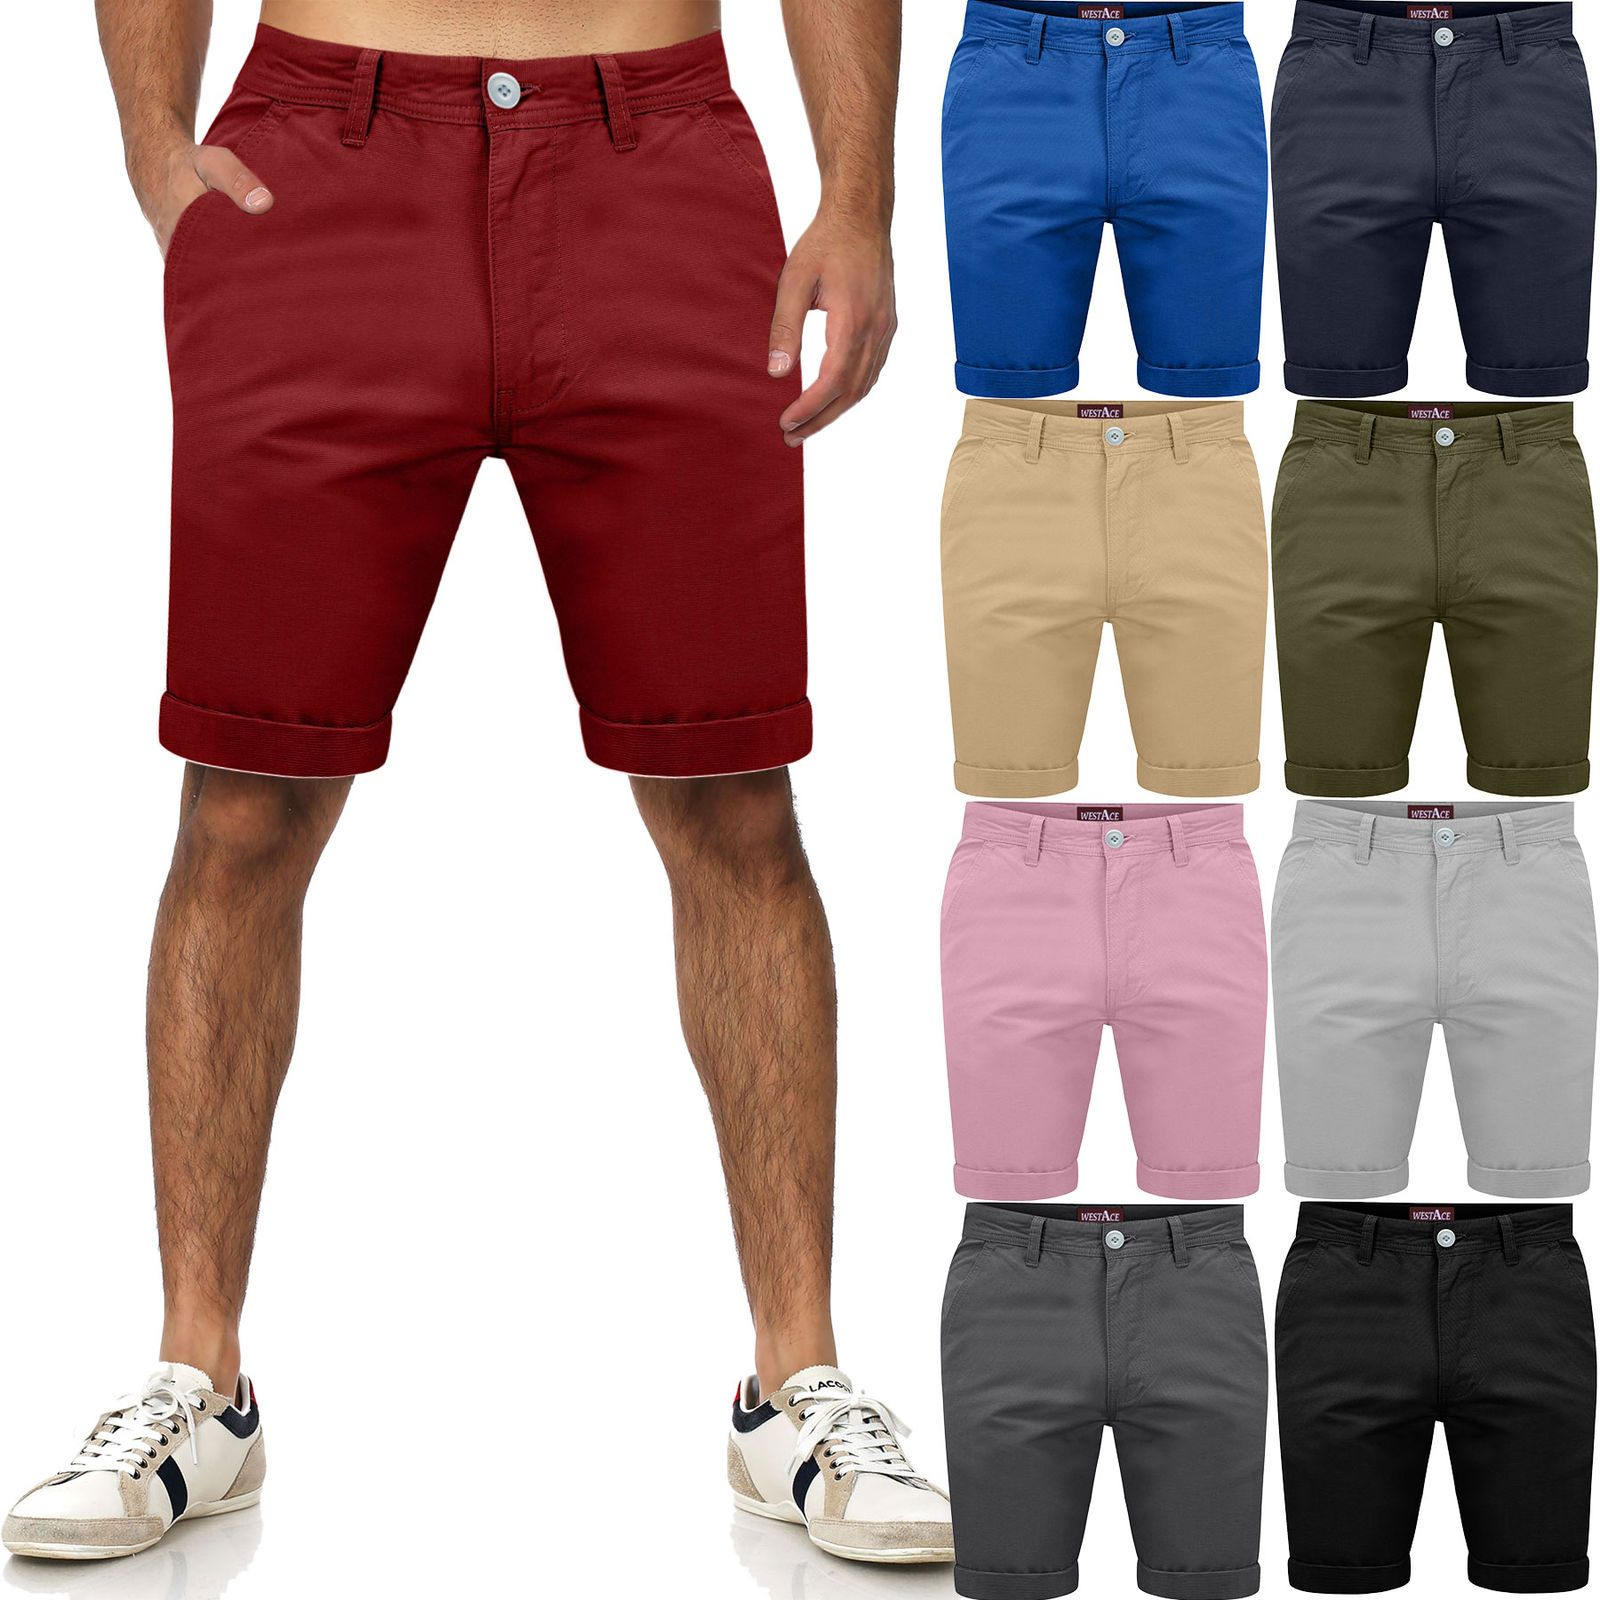 6a37197efa £9.95 GBP - Mens Chino Shorts Cotton Combat Half Pant Casual Summer Cargo  Jeans Casual